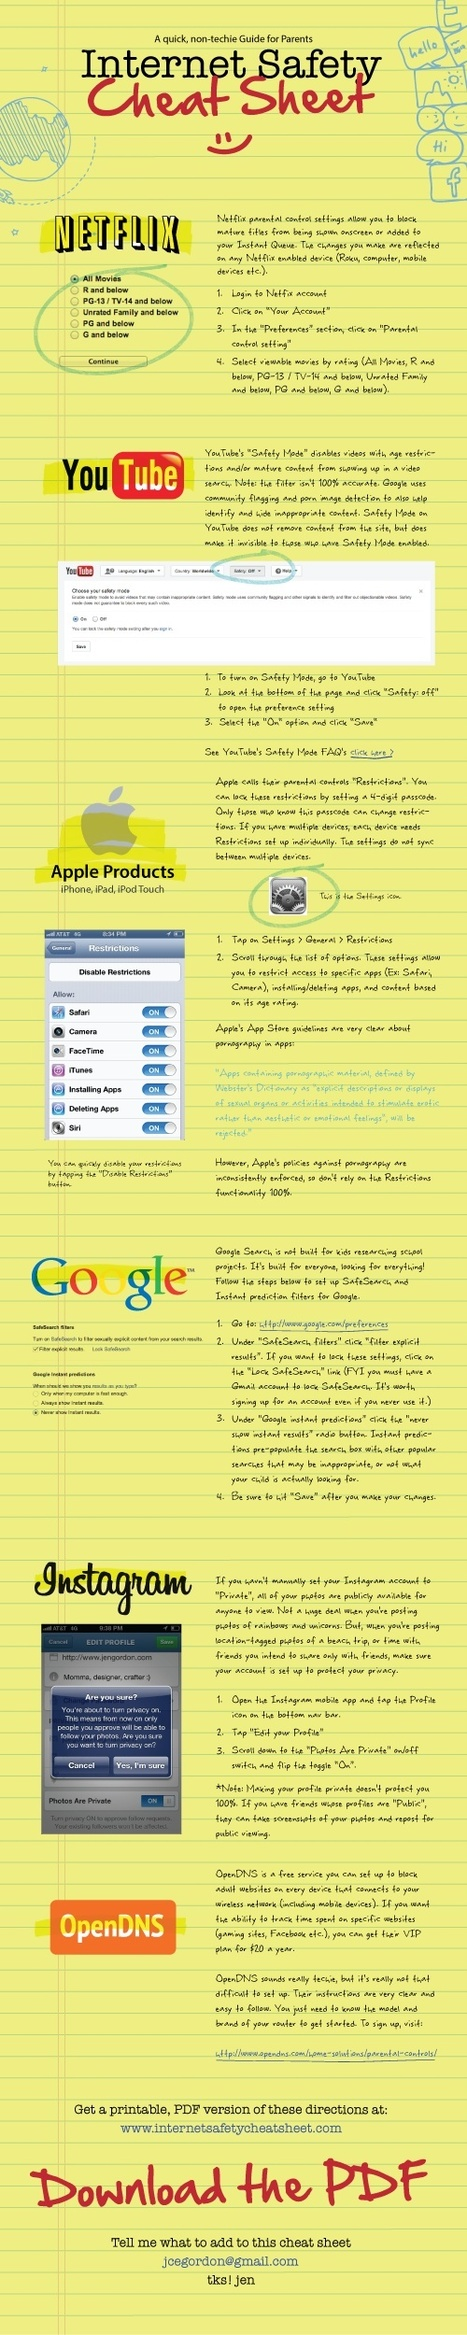 An Outstanding Internet Safety Cheat Sheet for Teachers and Parents   JOIN SCOOP.IT AND FOLLOW ME ON SCOOP.IT   Scoop.it